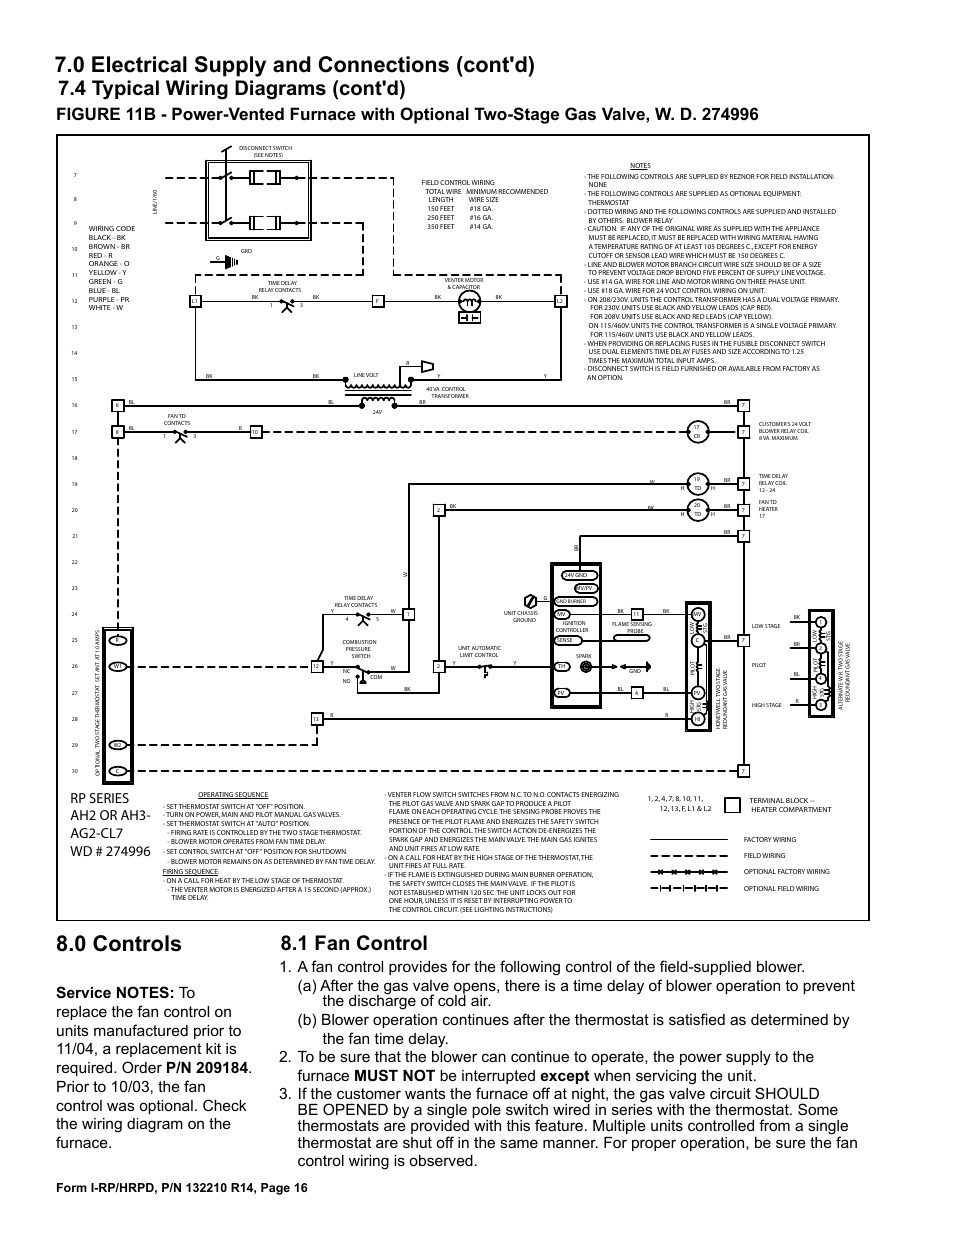 medium resolution of 1 fan control 4 typical wiring diagrams cont d reznor hrpd